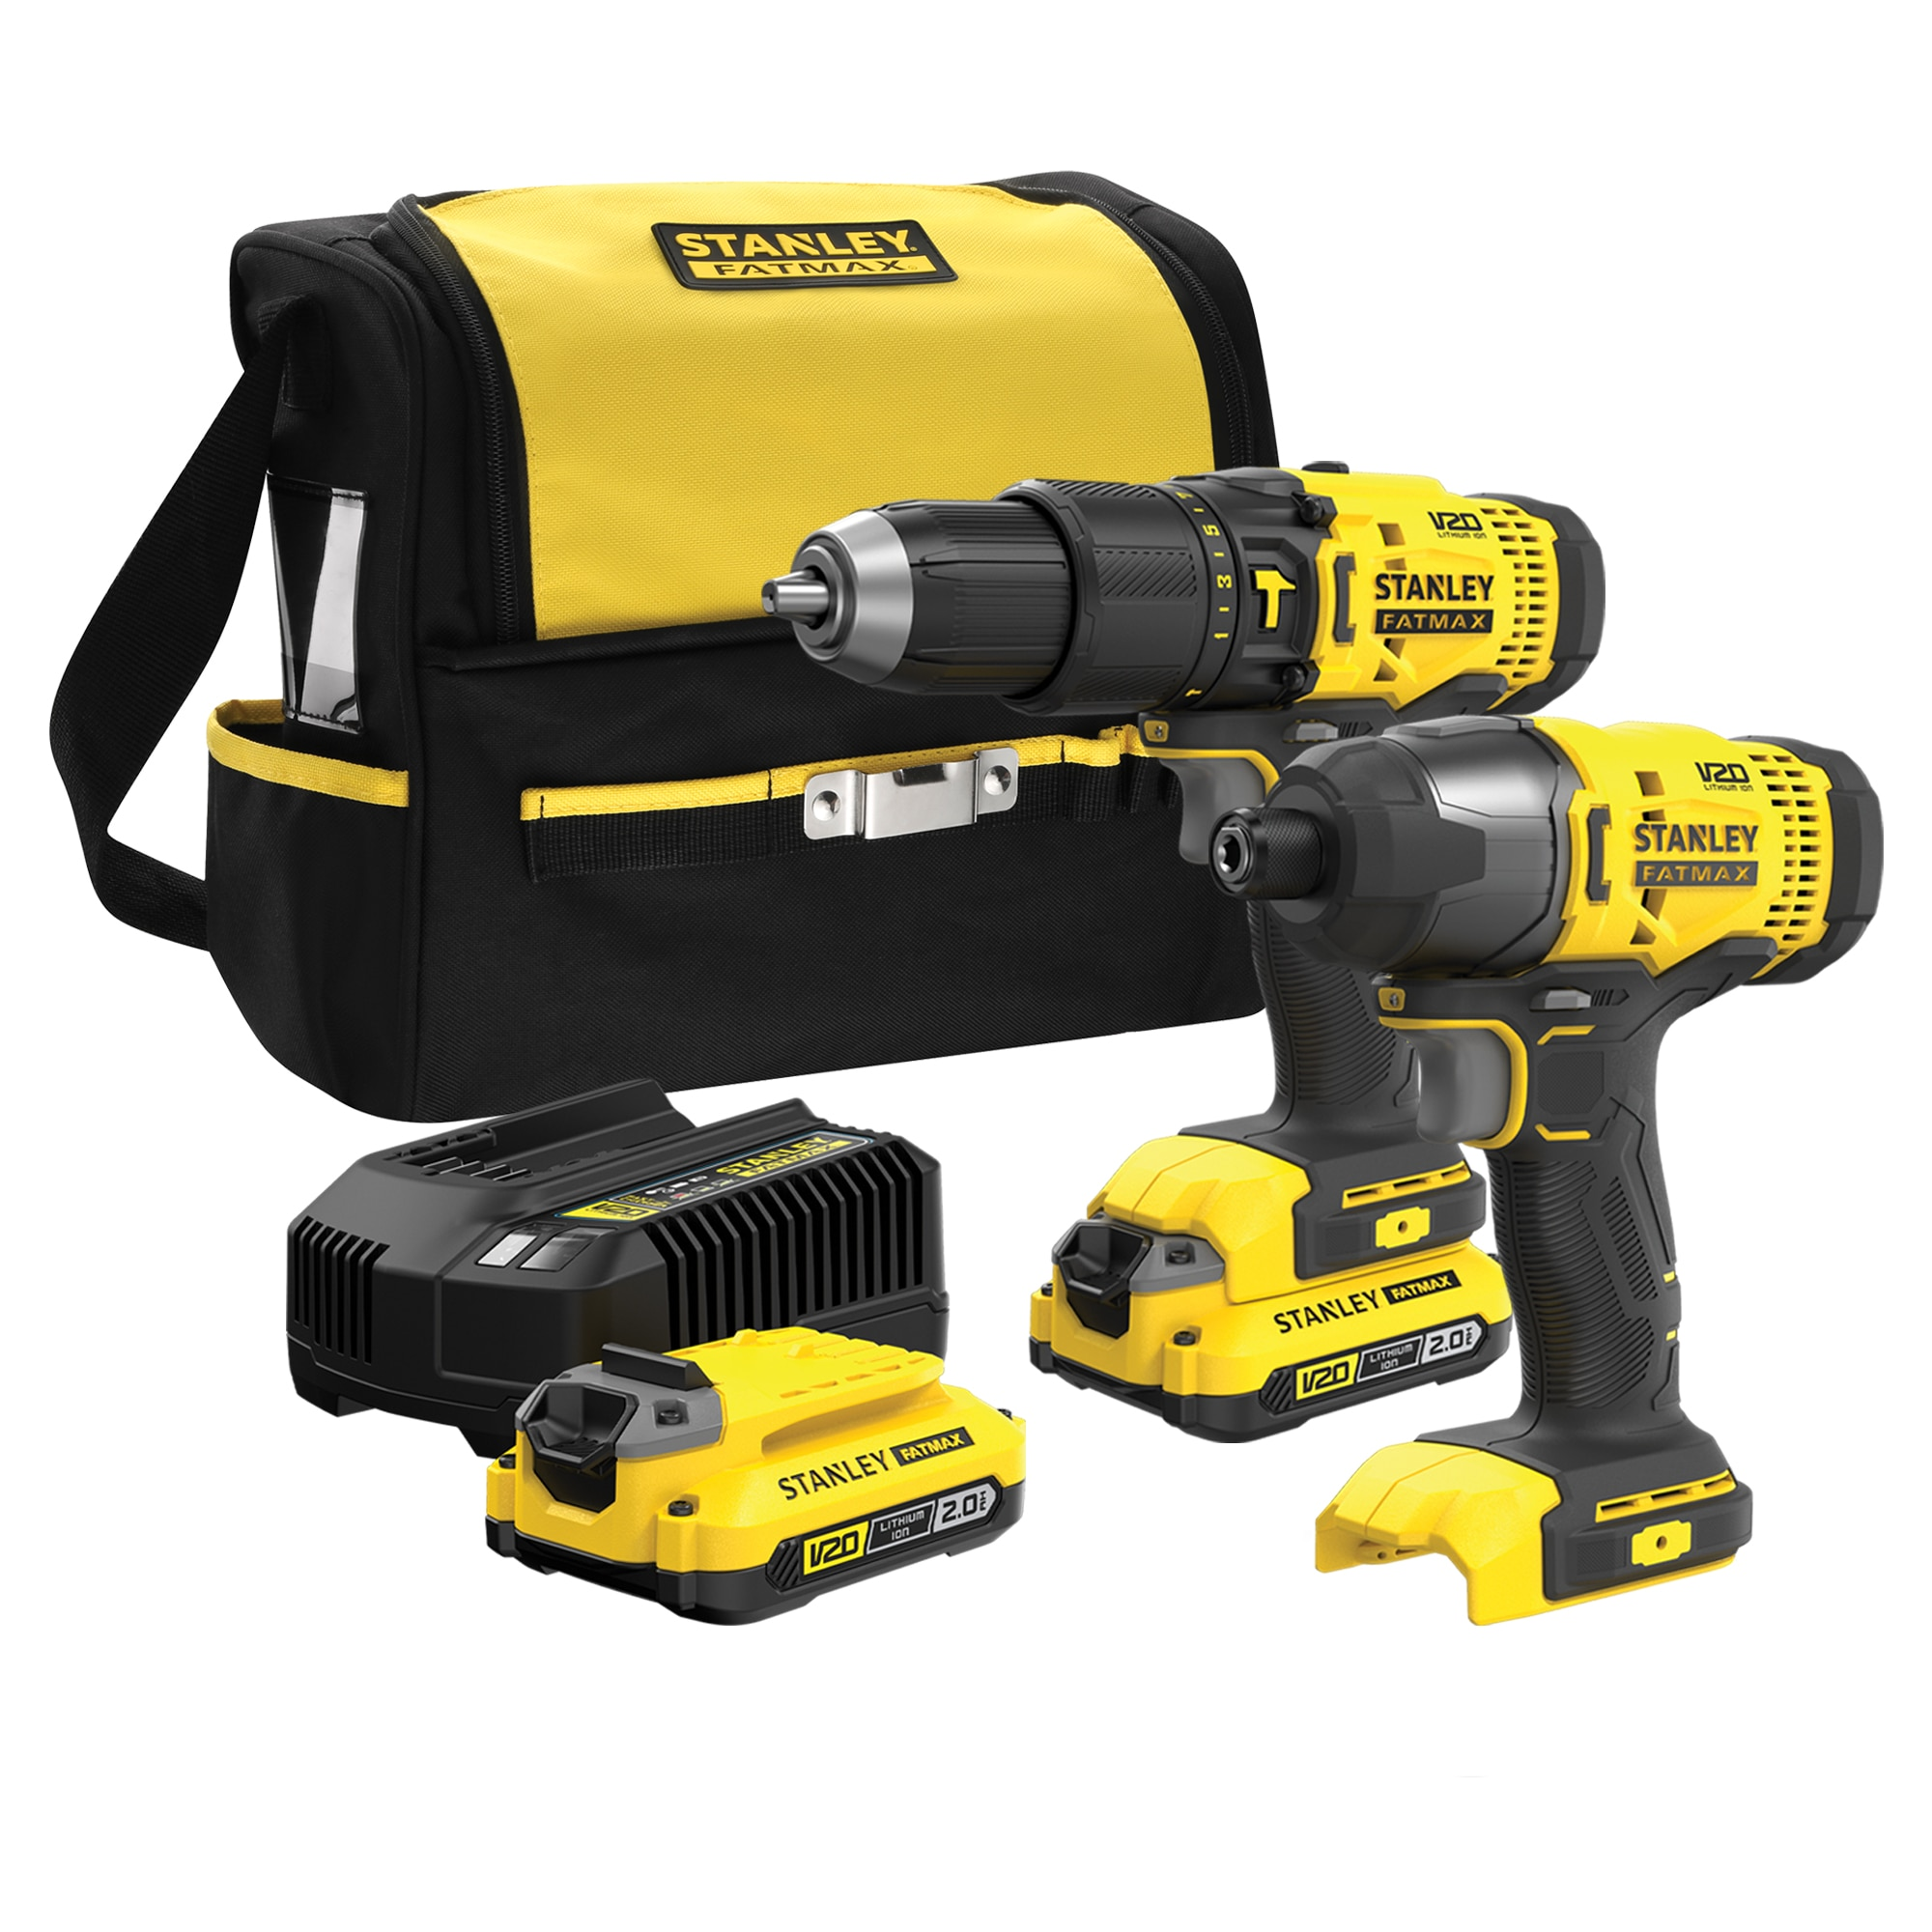 Power tool kits